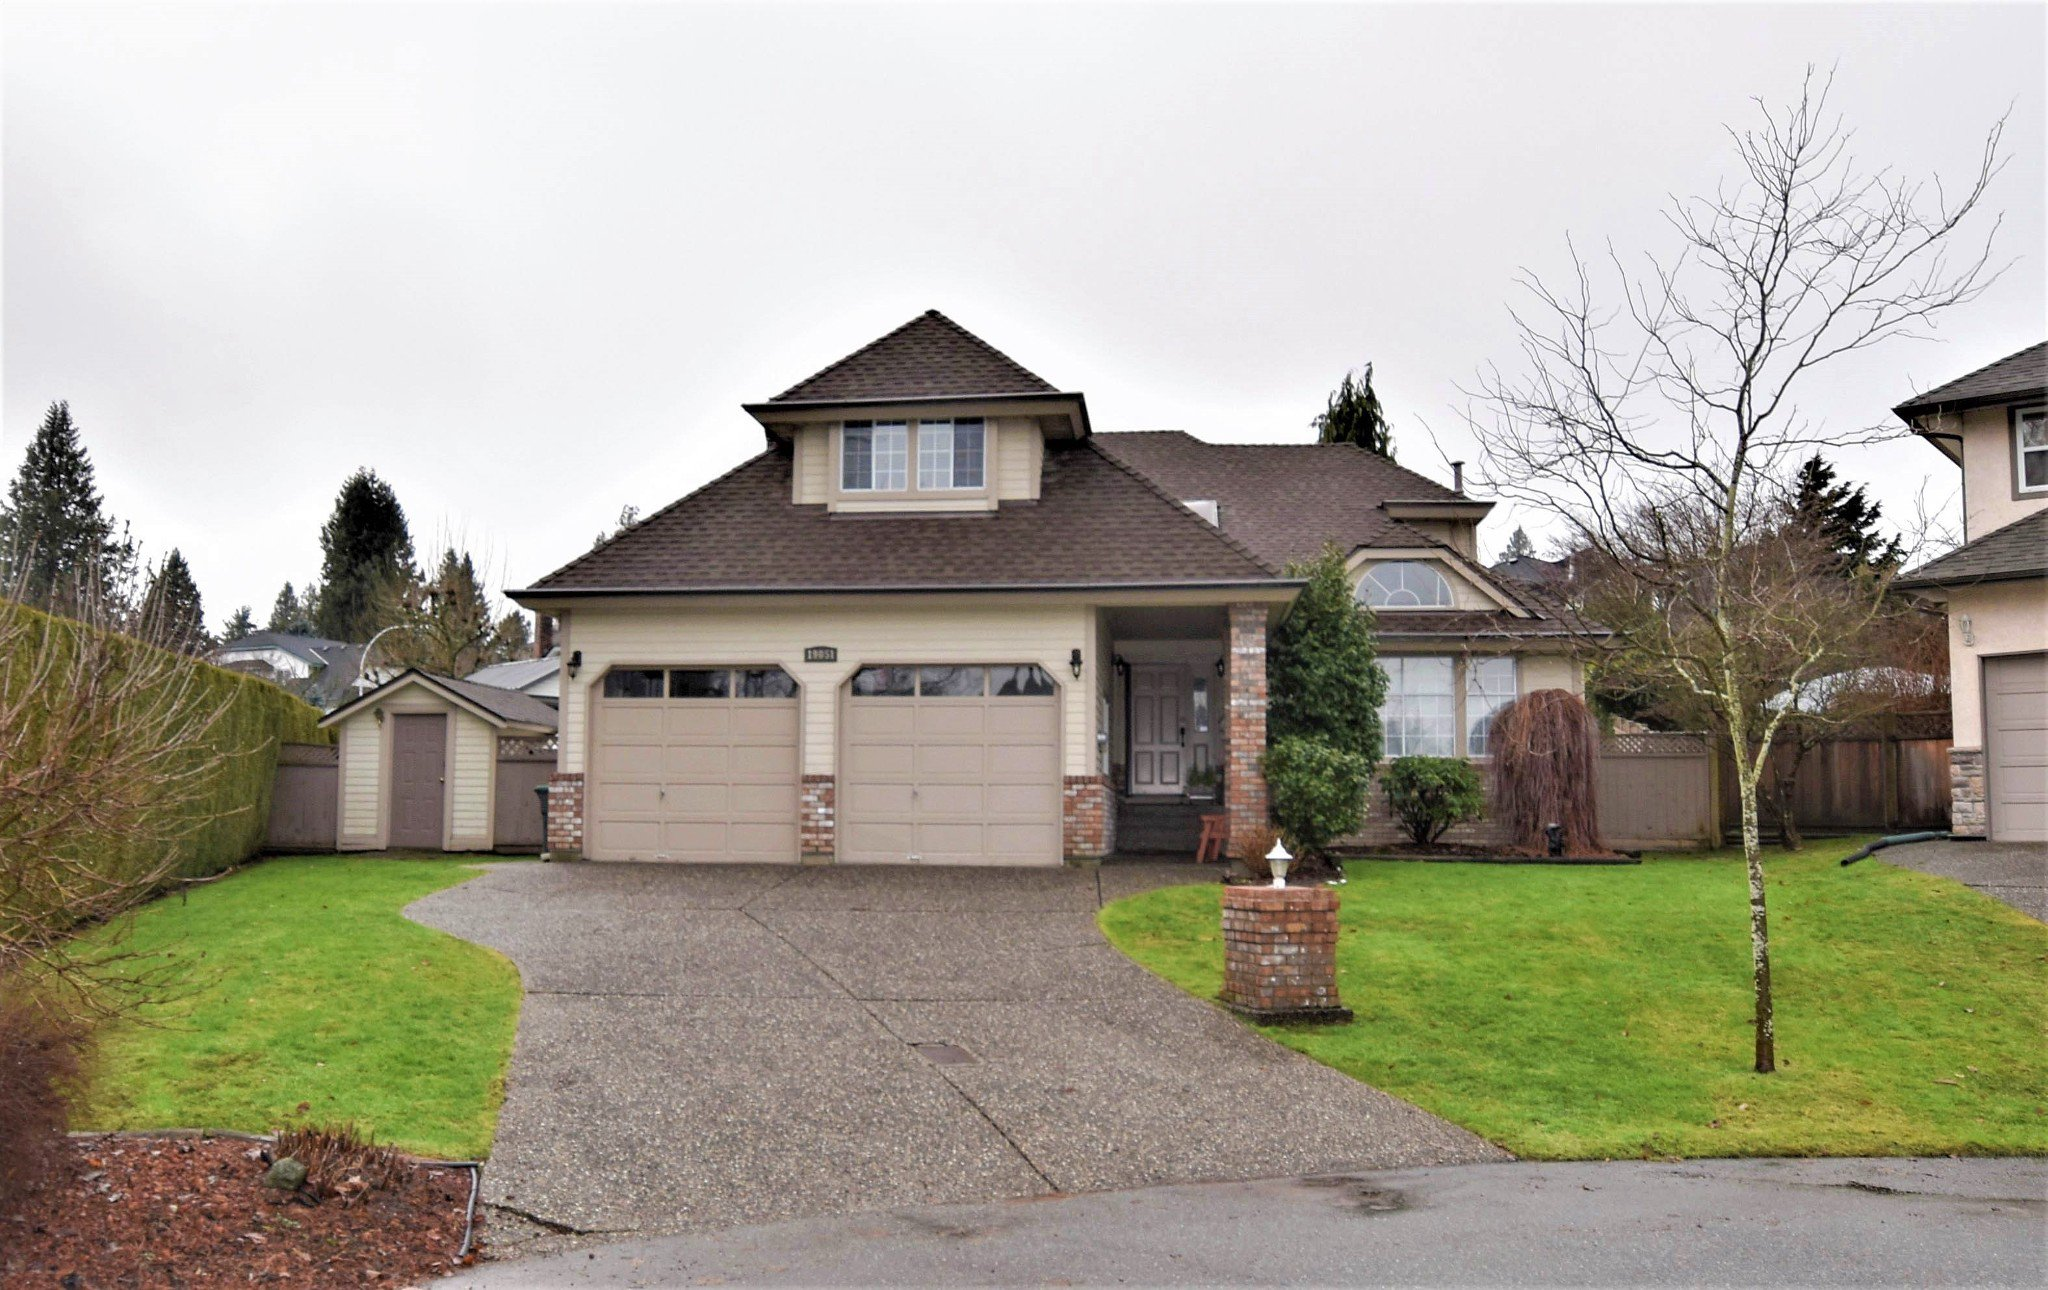 Main Photo: 19051 59 Avenue in Surrey: Cloverdale BC House for sale (Cloverdale)  : MLS®# R2230681